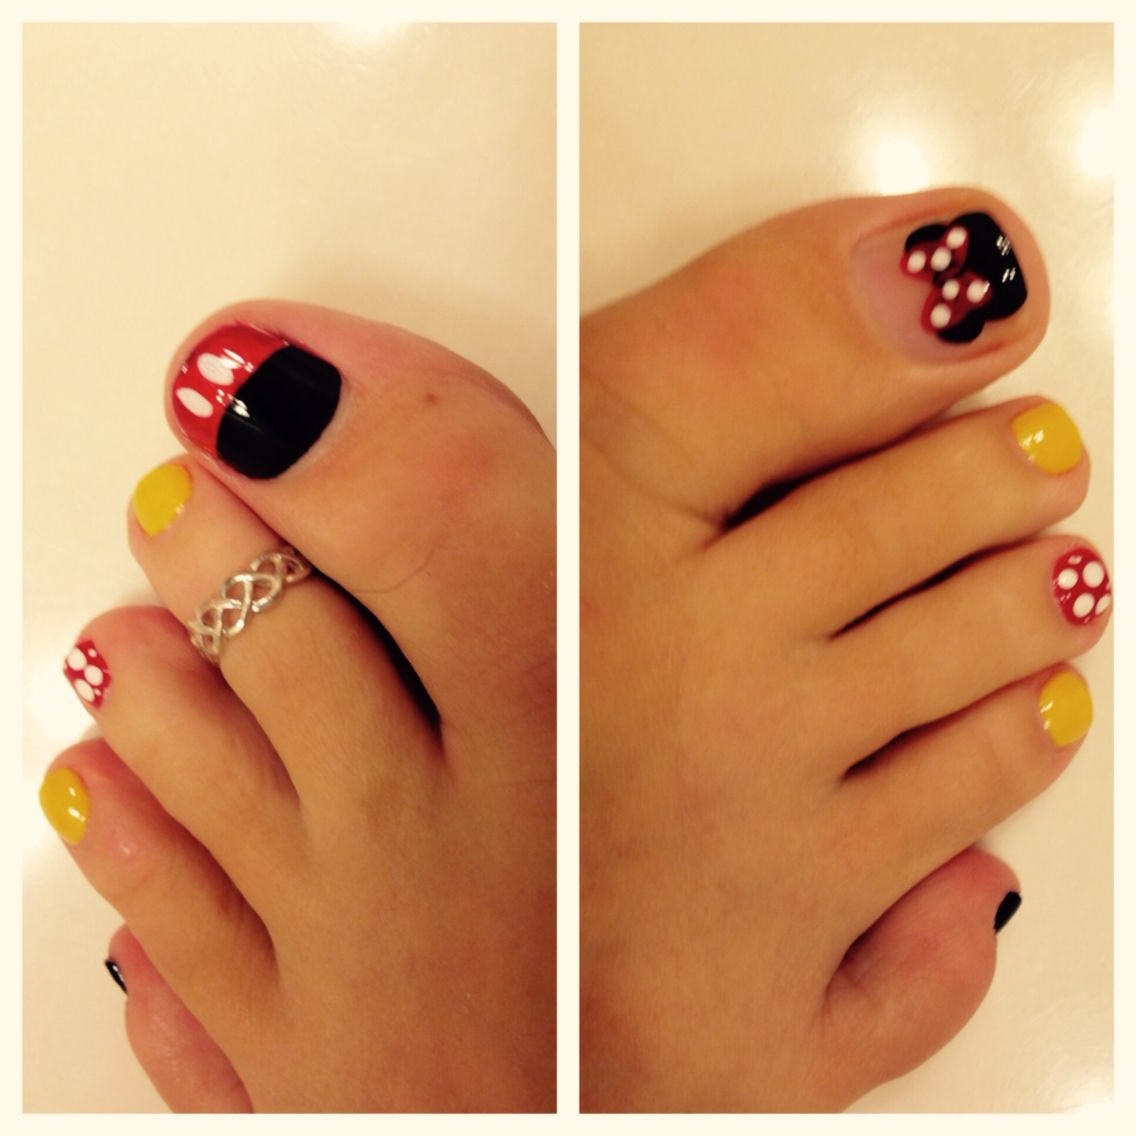 Disney Pedicure | Nails | Pinterest | Uña decoradas, Diseños de uñas ...